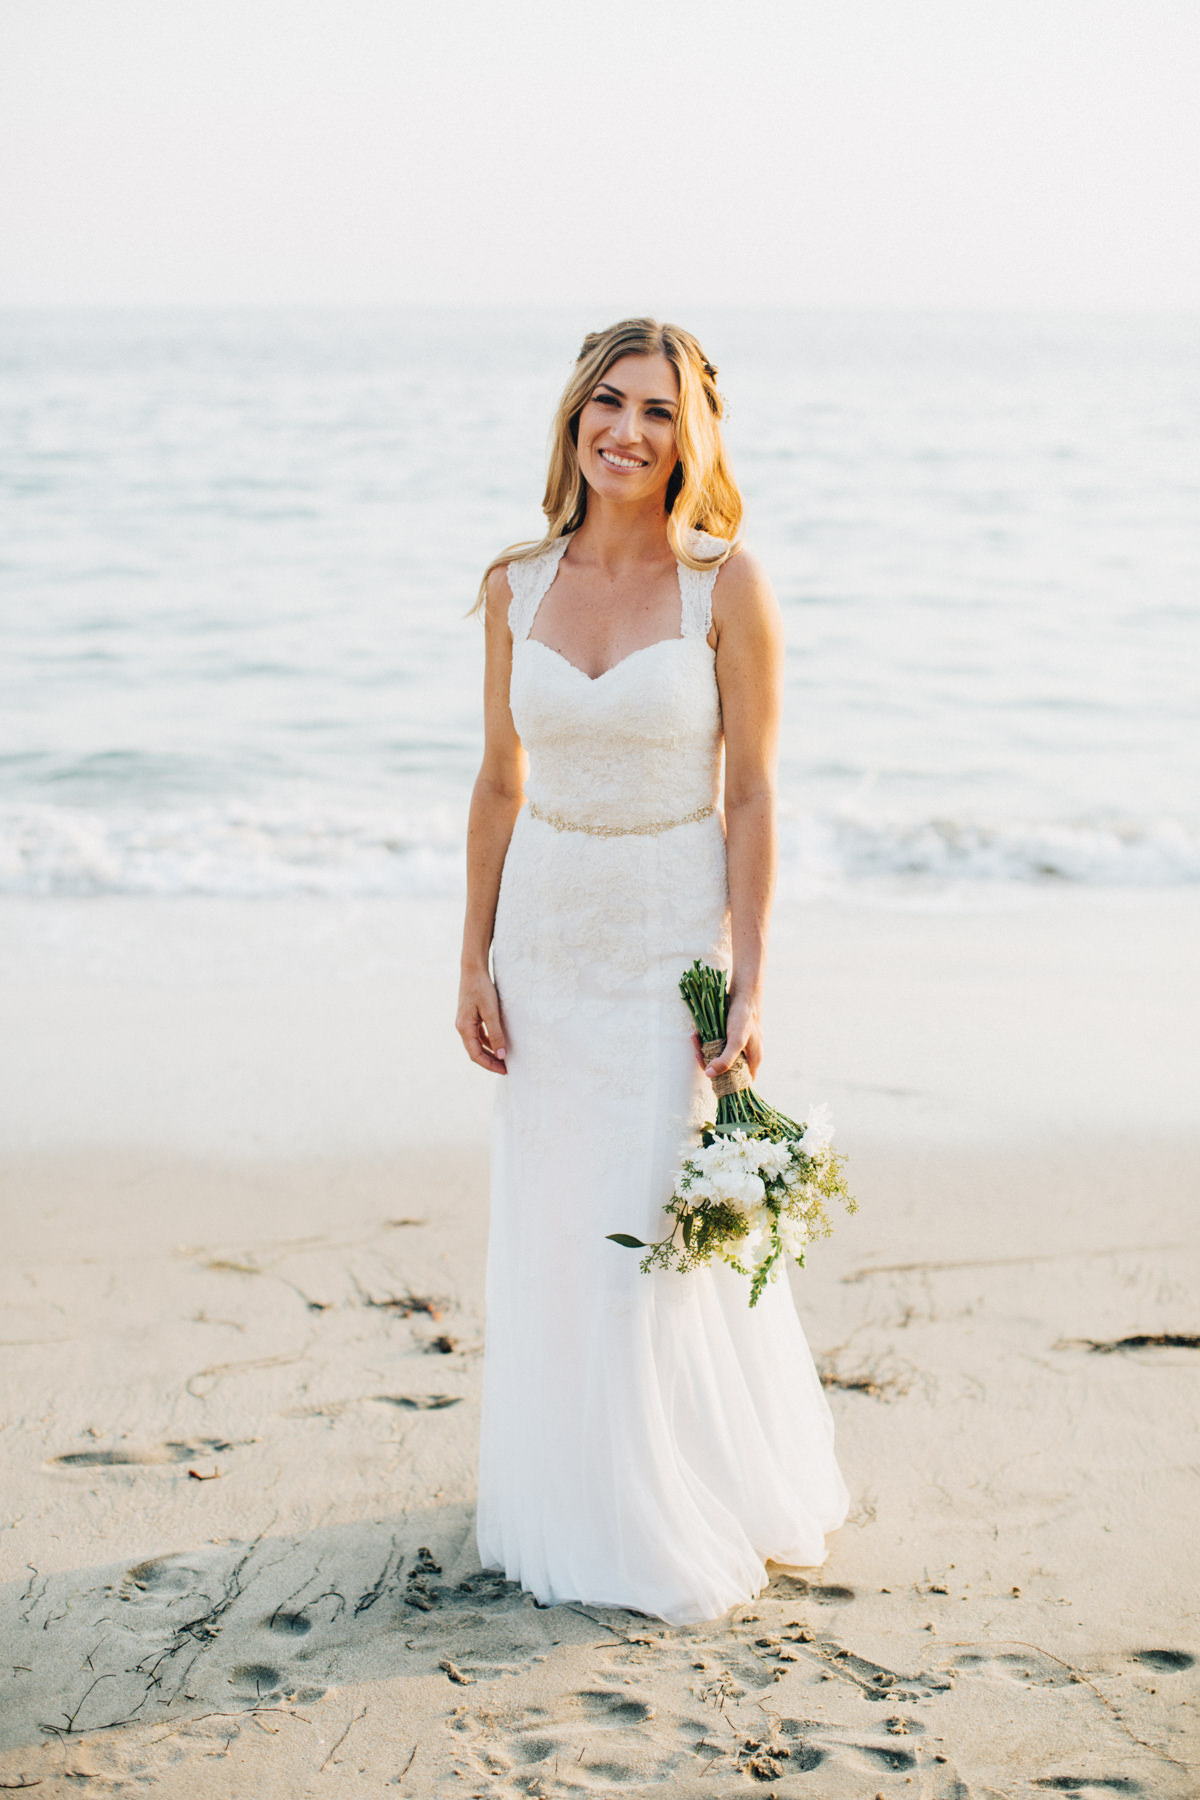 Hotel Laguna Beach Wedding Elopement San Diego OC Portrait + Wedding Photographer Martina Micko Photo 0034